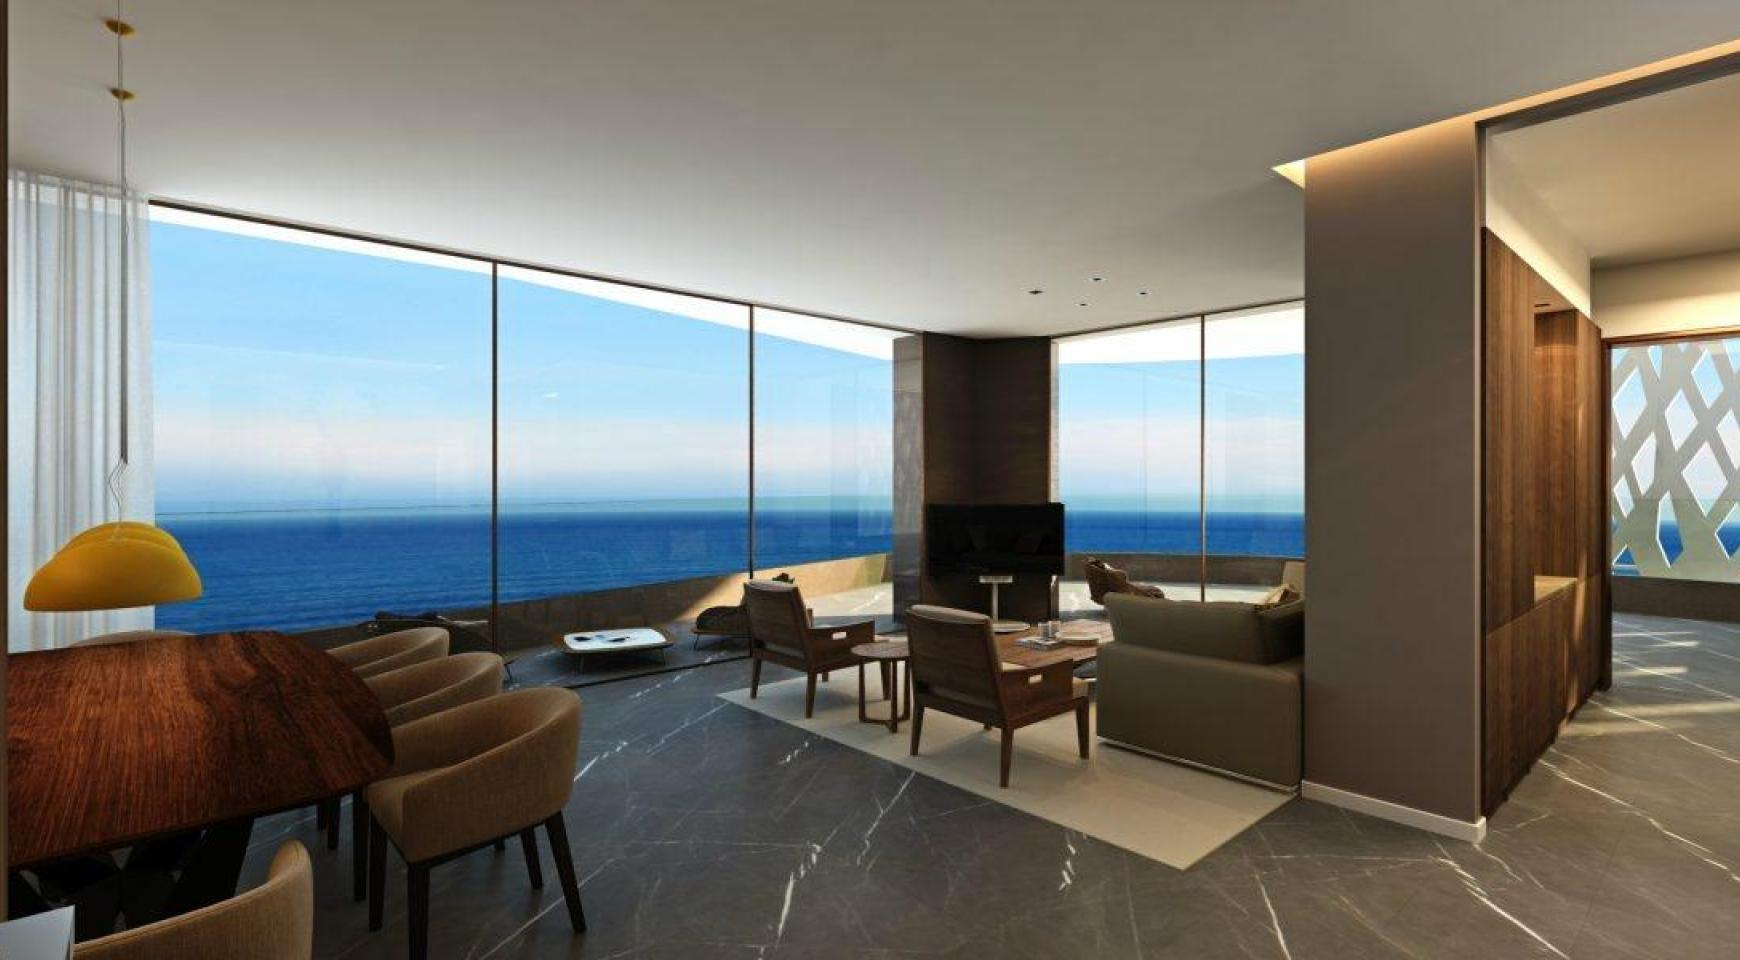 Modern 3 Bedroom Apartment in a New Unique Project by the Sea - 1